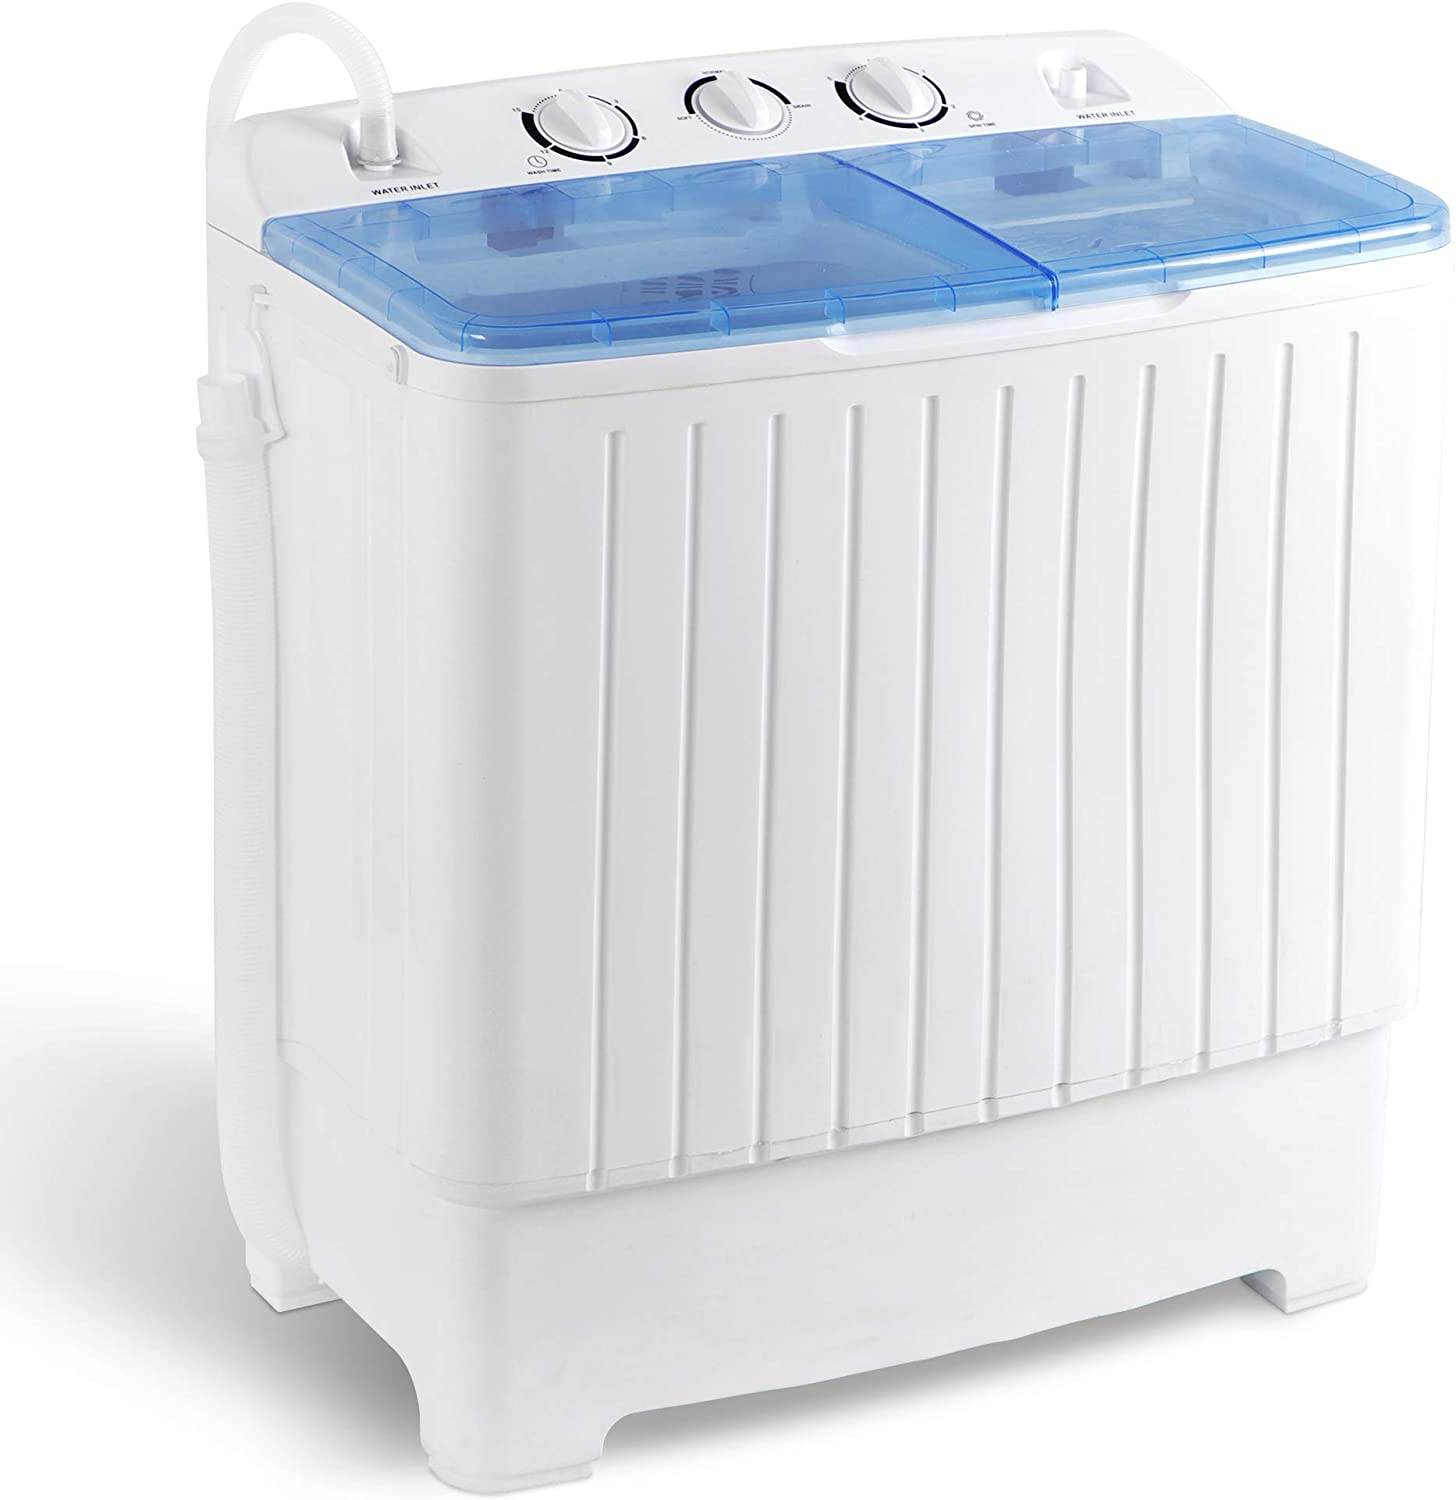 SUPER DEAL 2-IN-1 Mini Compact Twin Tub Washing Machine